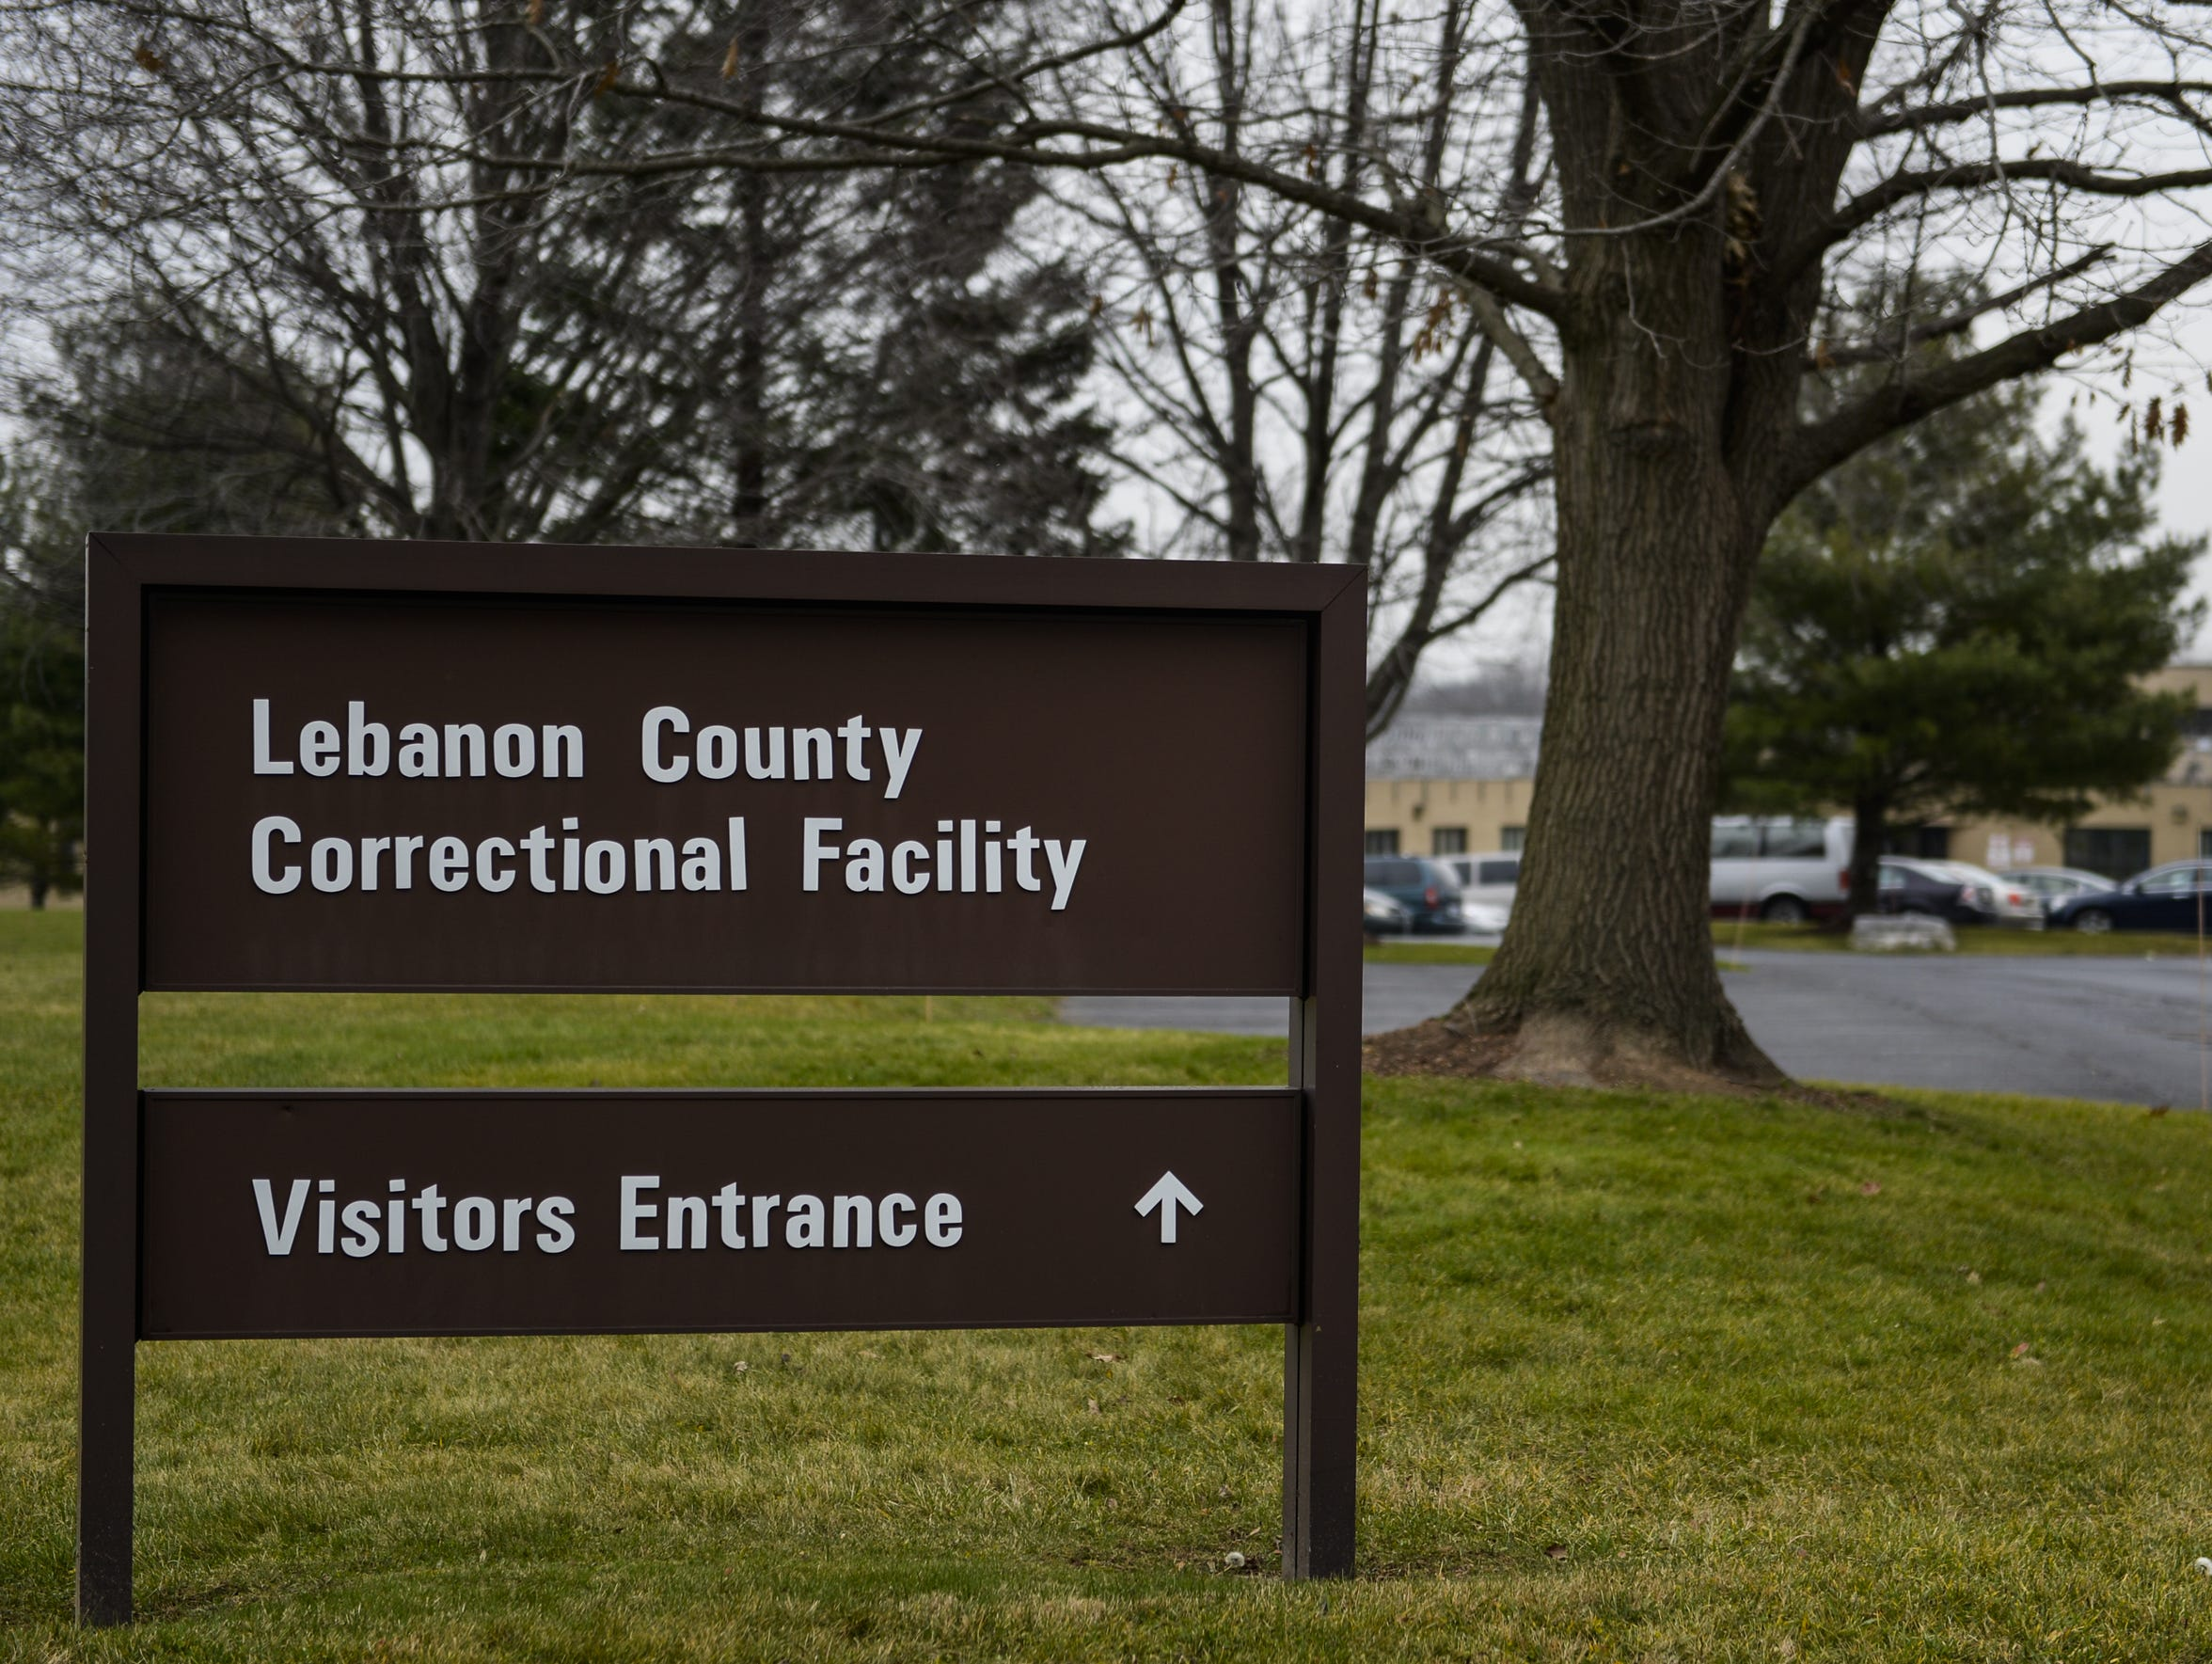 The Lebanon County Correctional Facility is on East